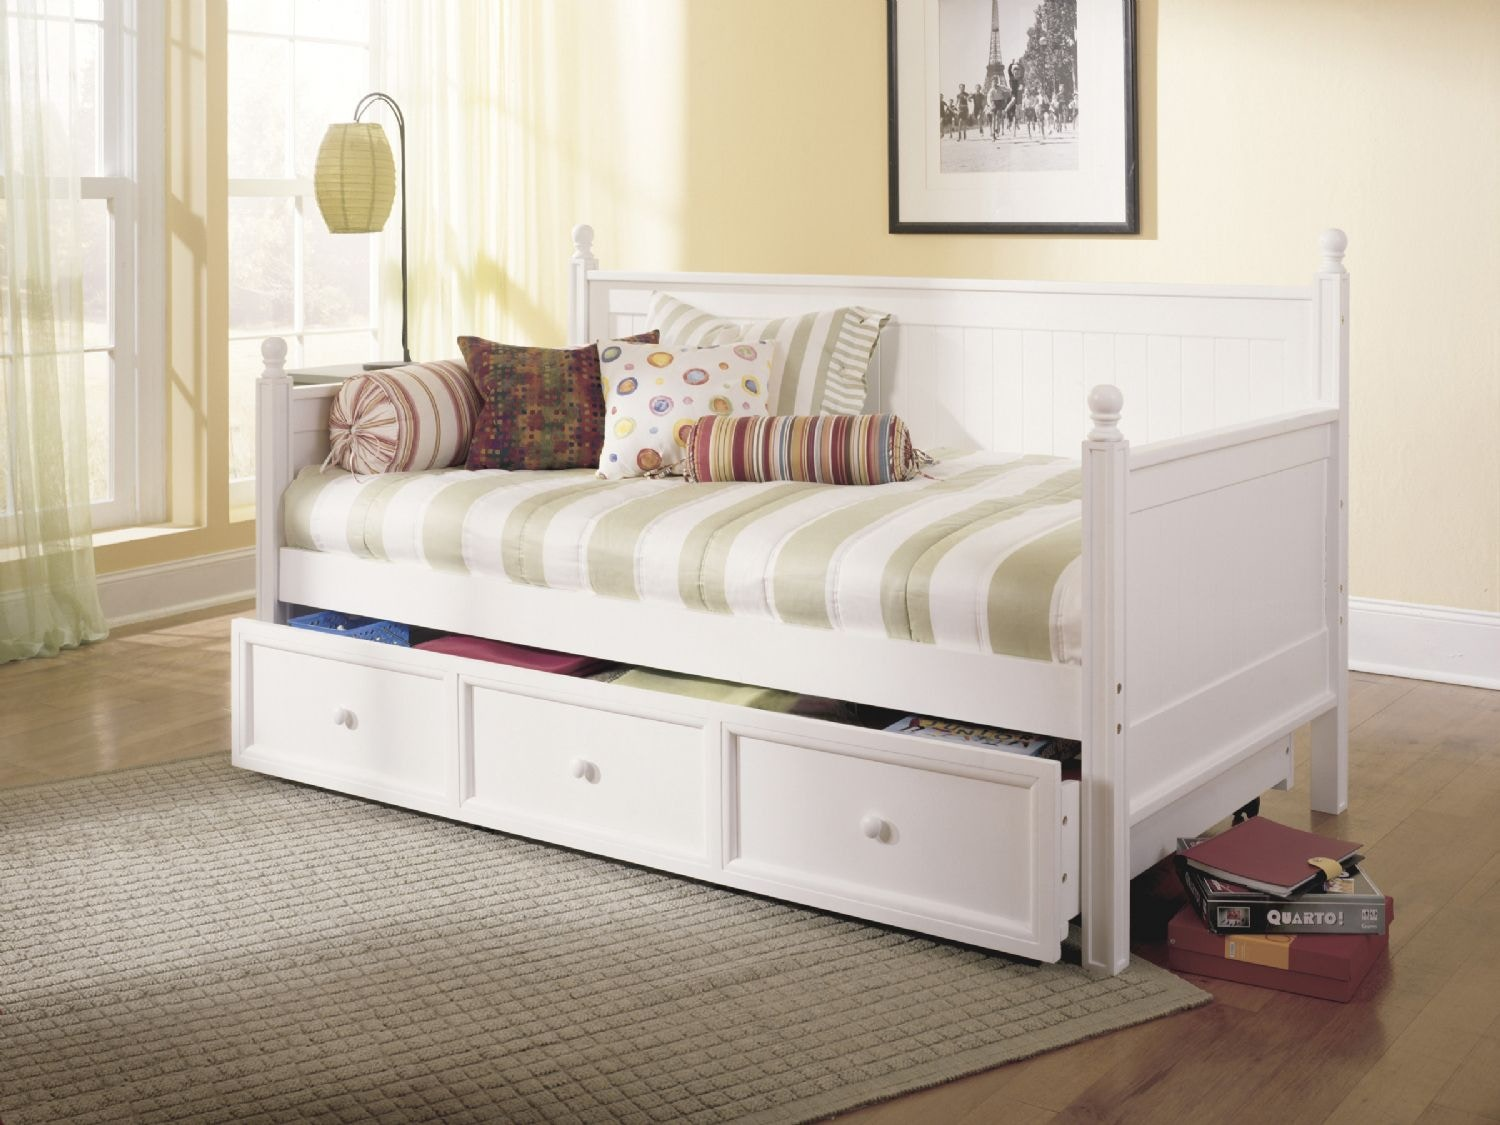 B51C43. Casey Daybed · Carol House Discount Price $697.00